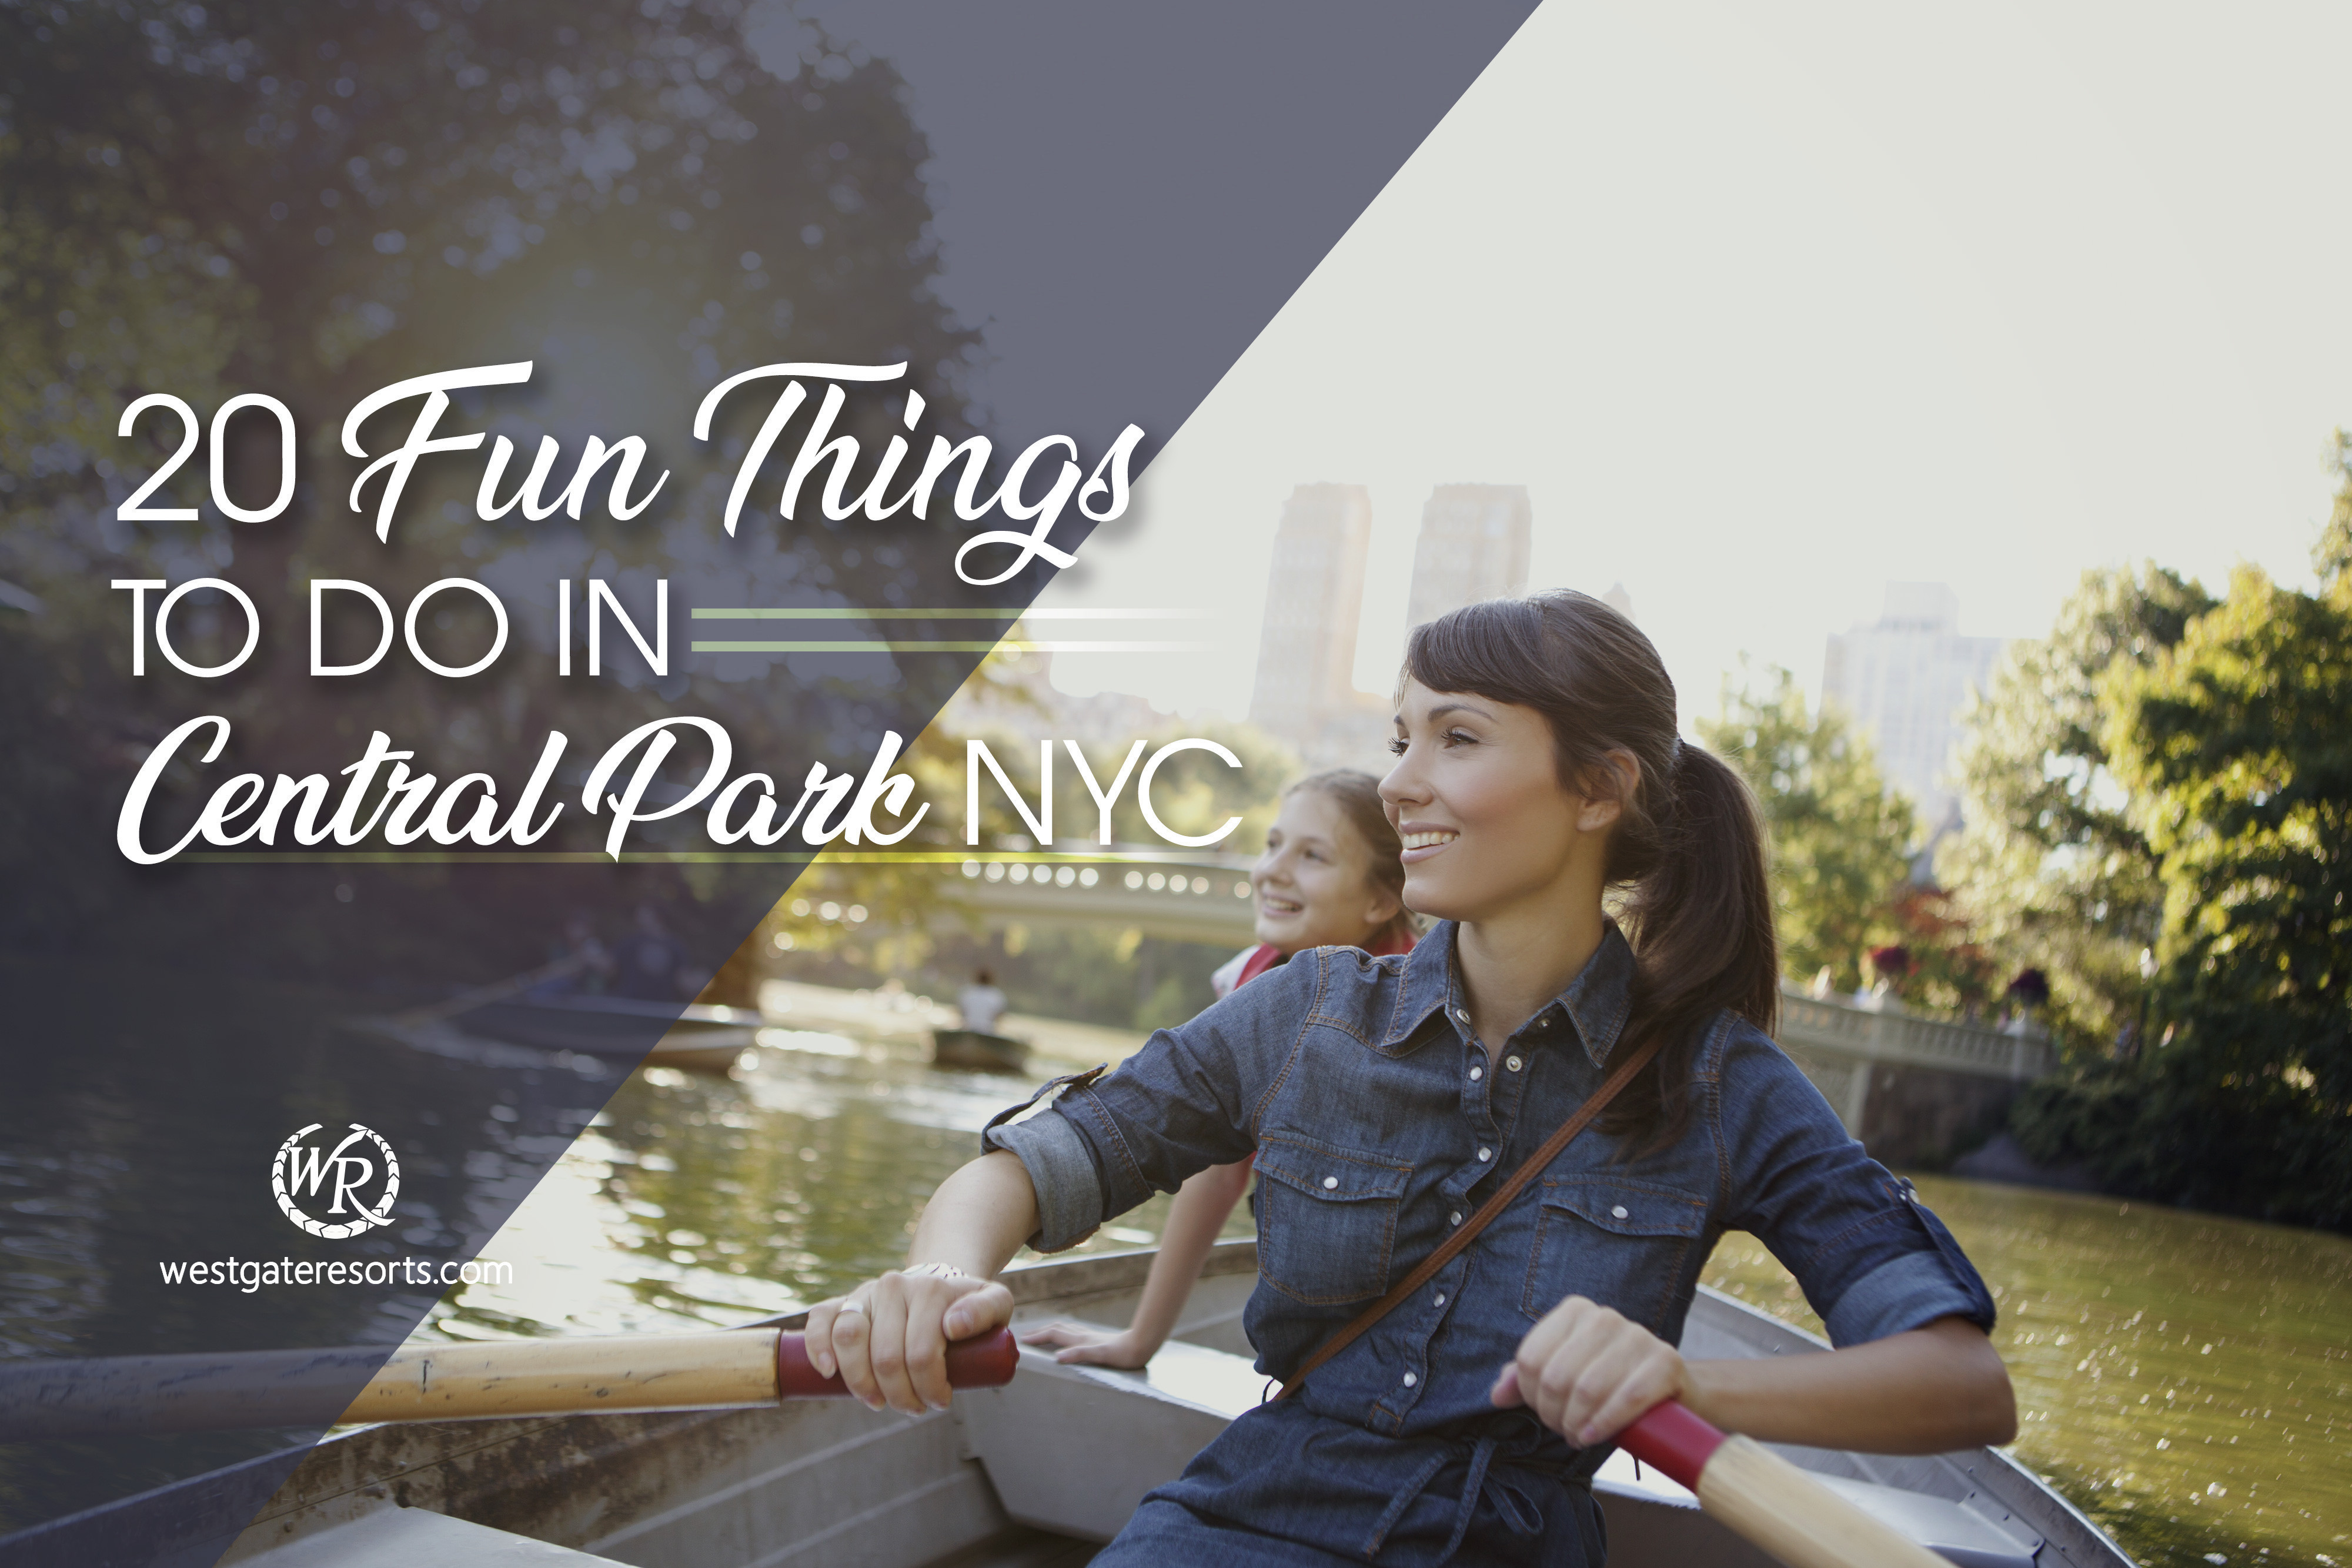 20 Fun Things to do in Central Park NYC